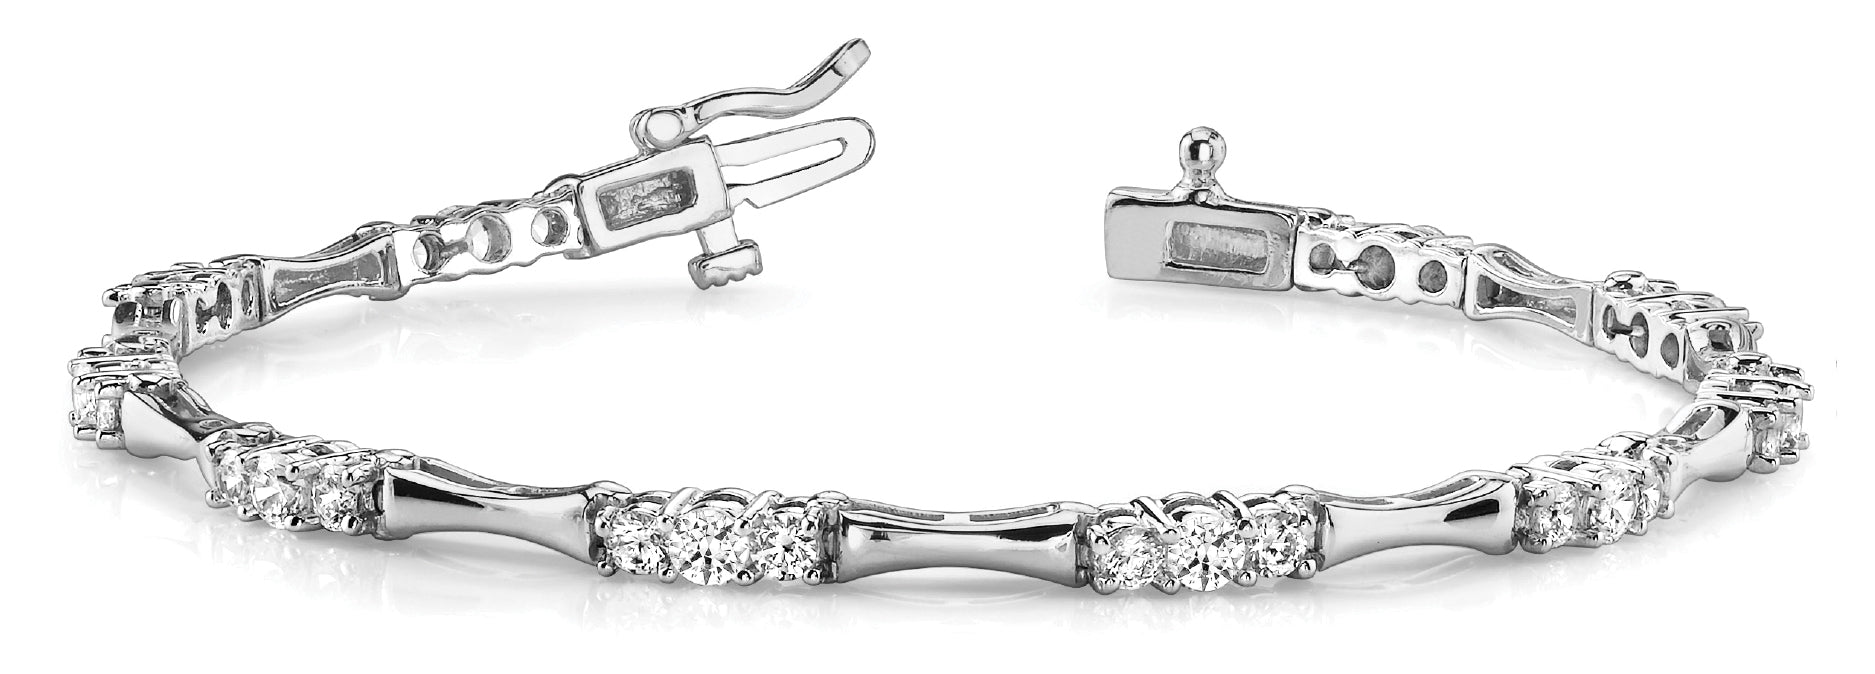 Fancy Diamond Bracelet Ladies 2.13ct tw - 14kt White Gold